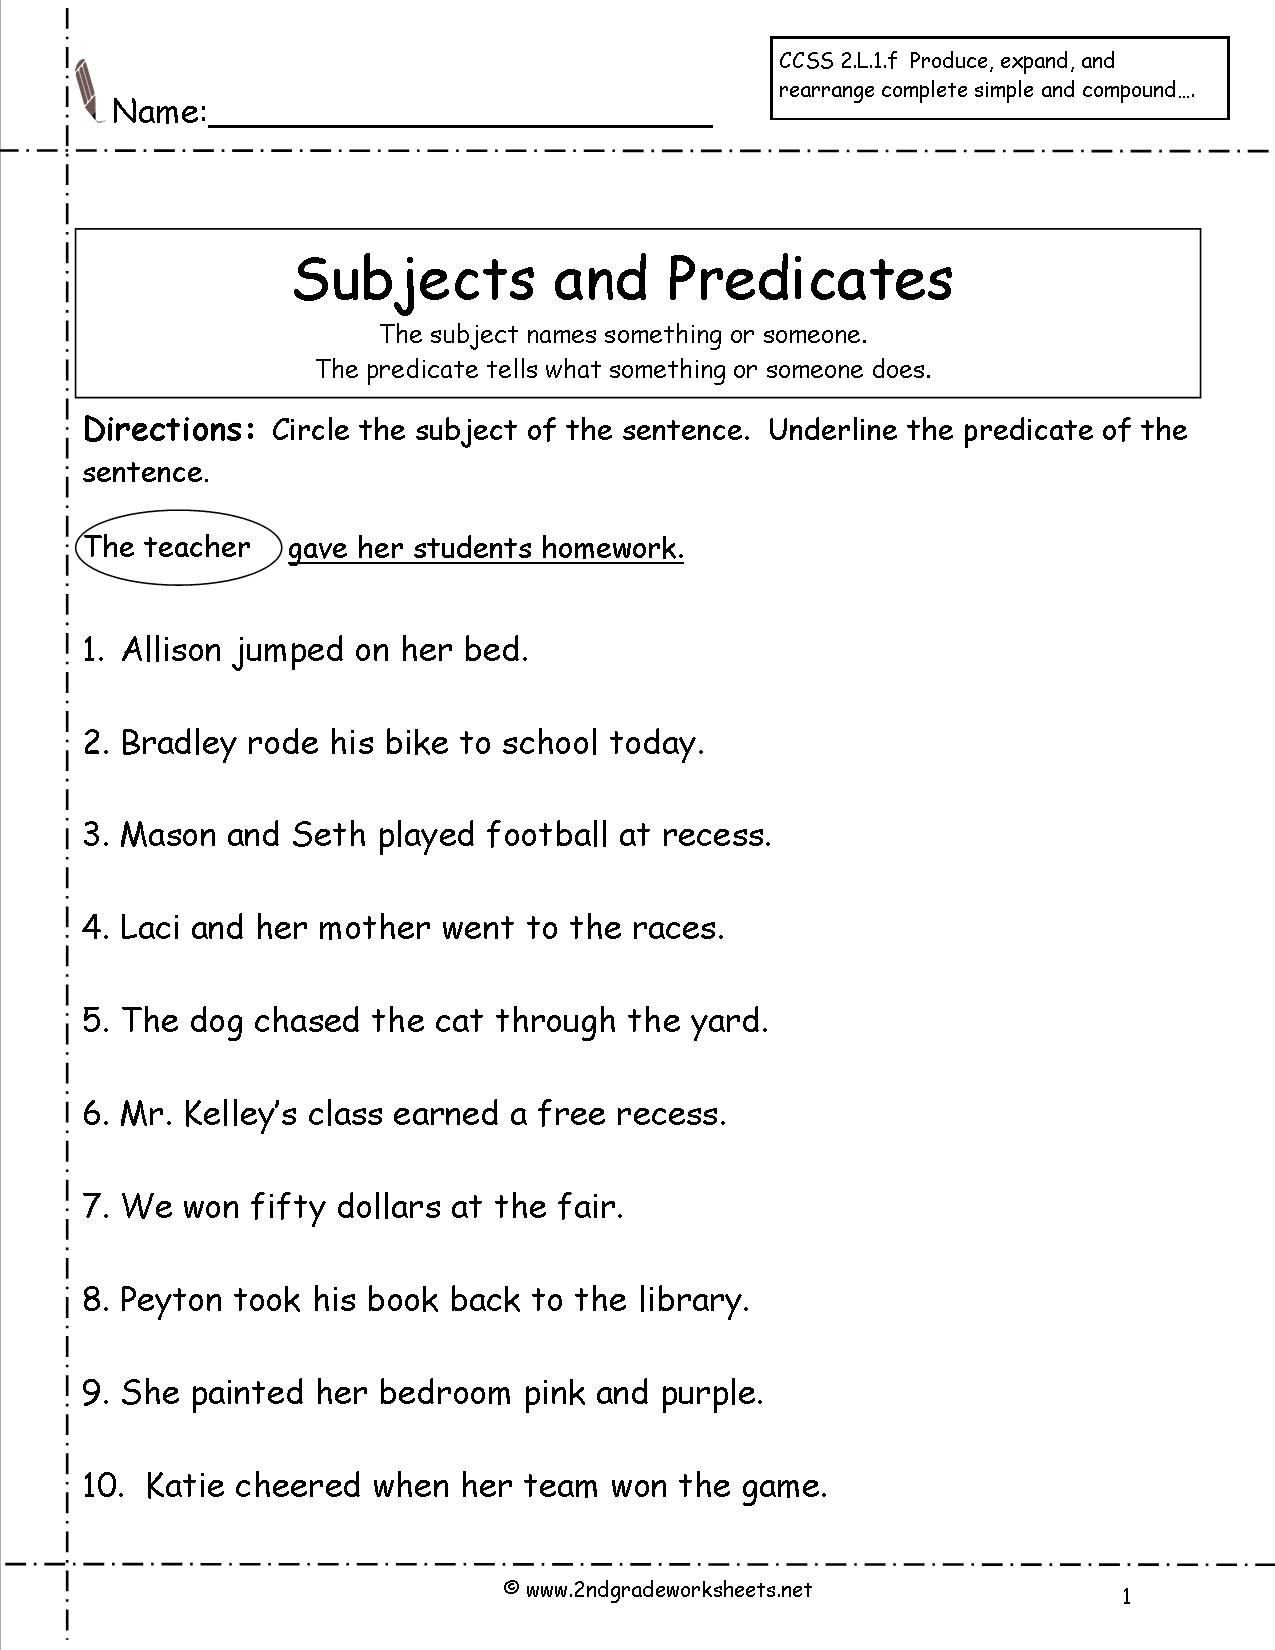 Simple Sentences Worksheet 3rd Grade Subject Predicate Worksheets 2nd Grade Google Search